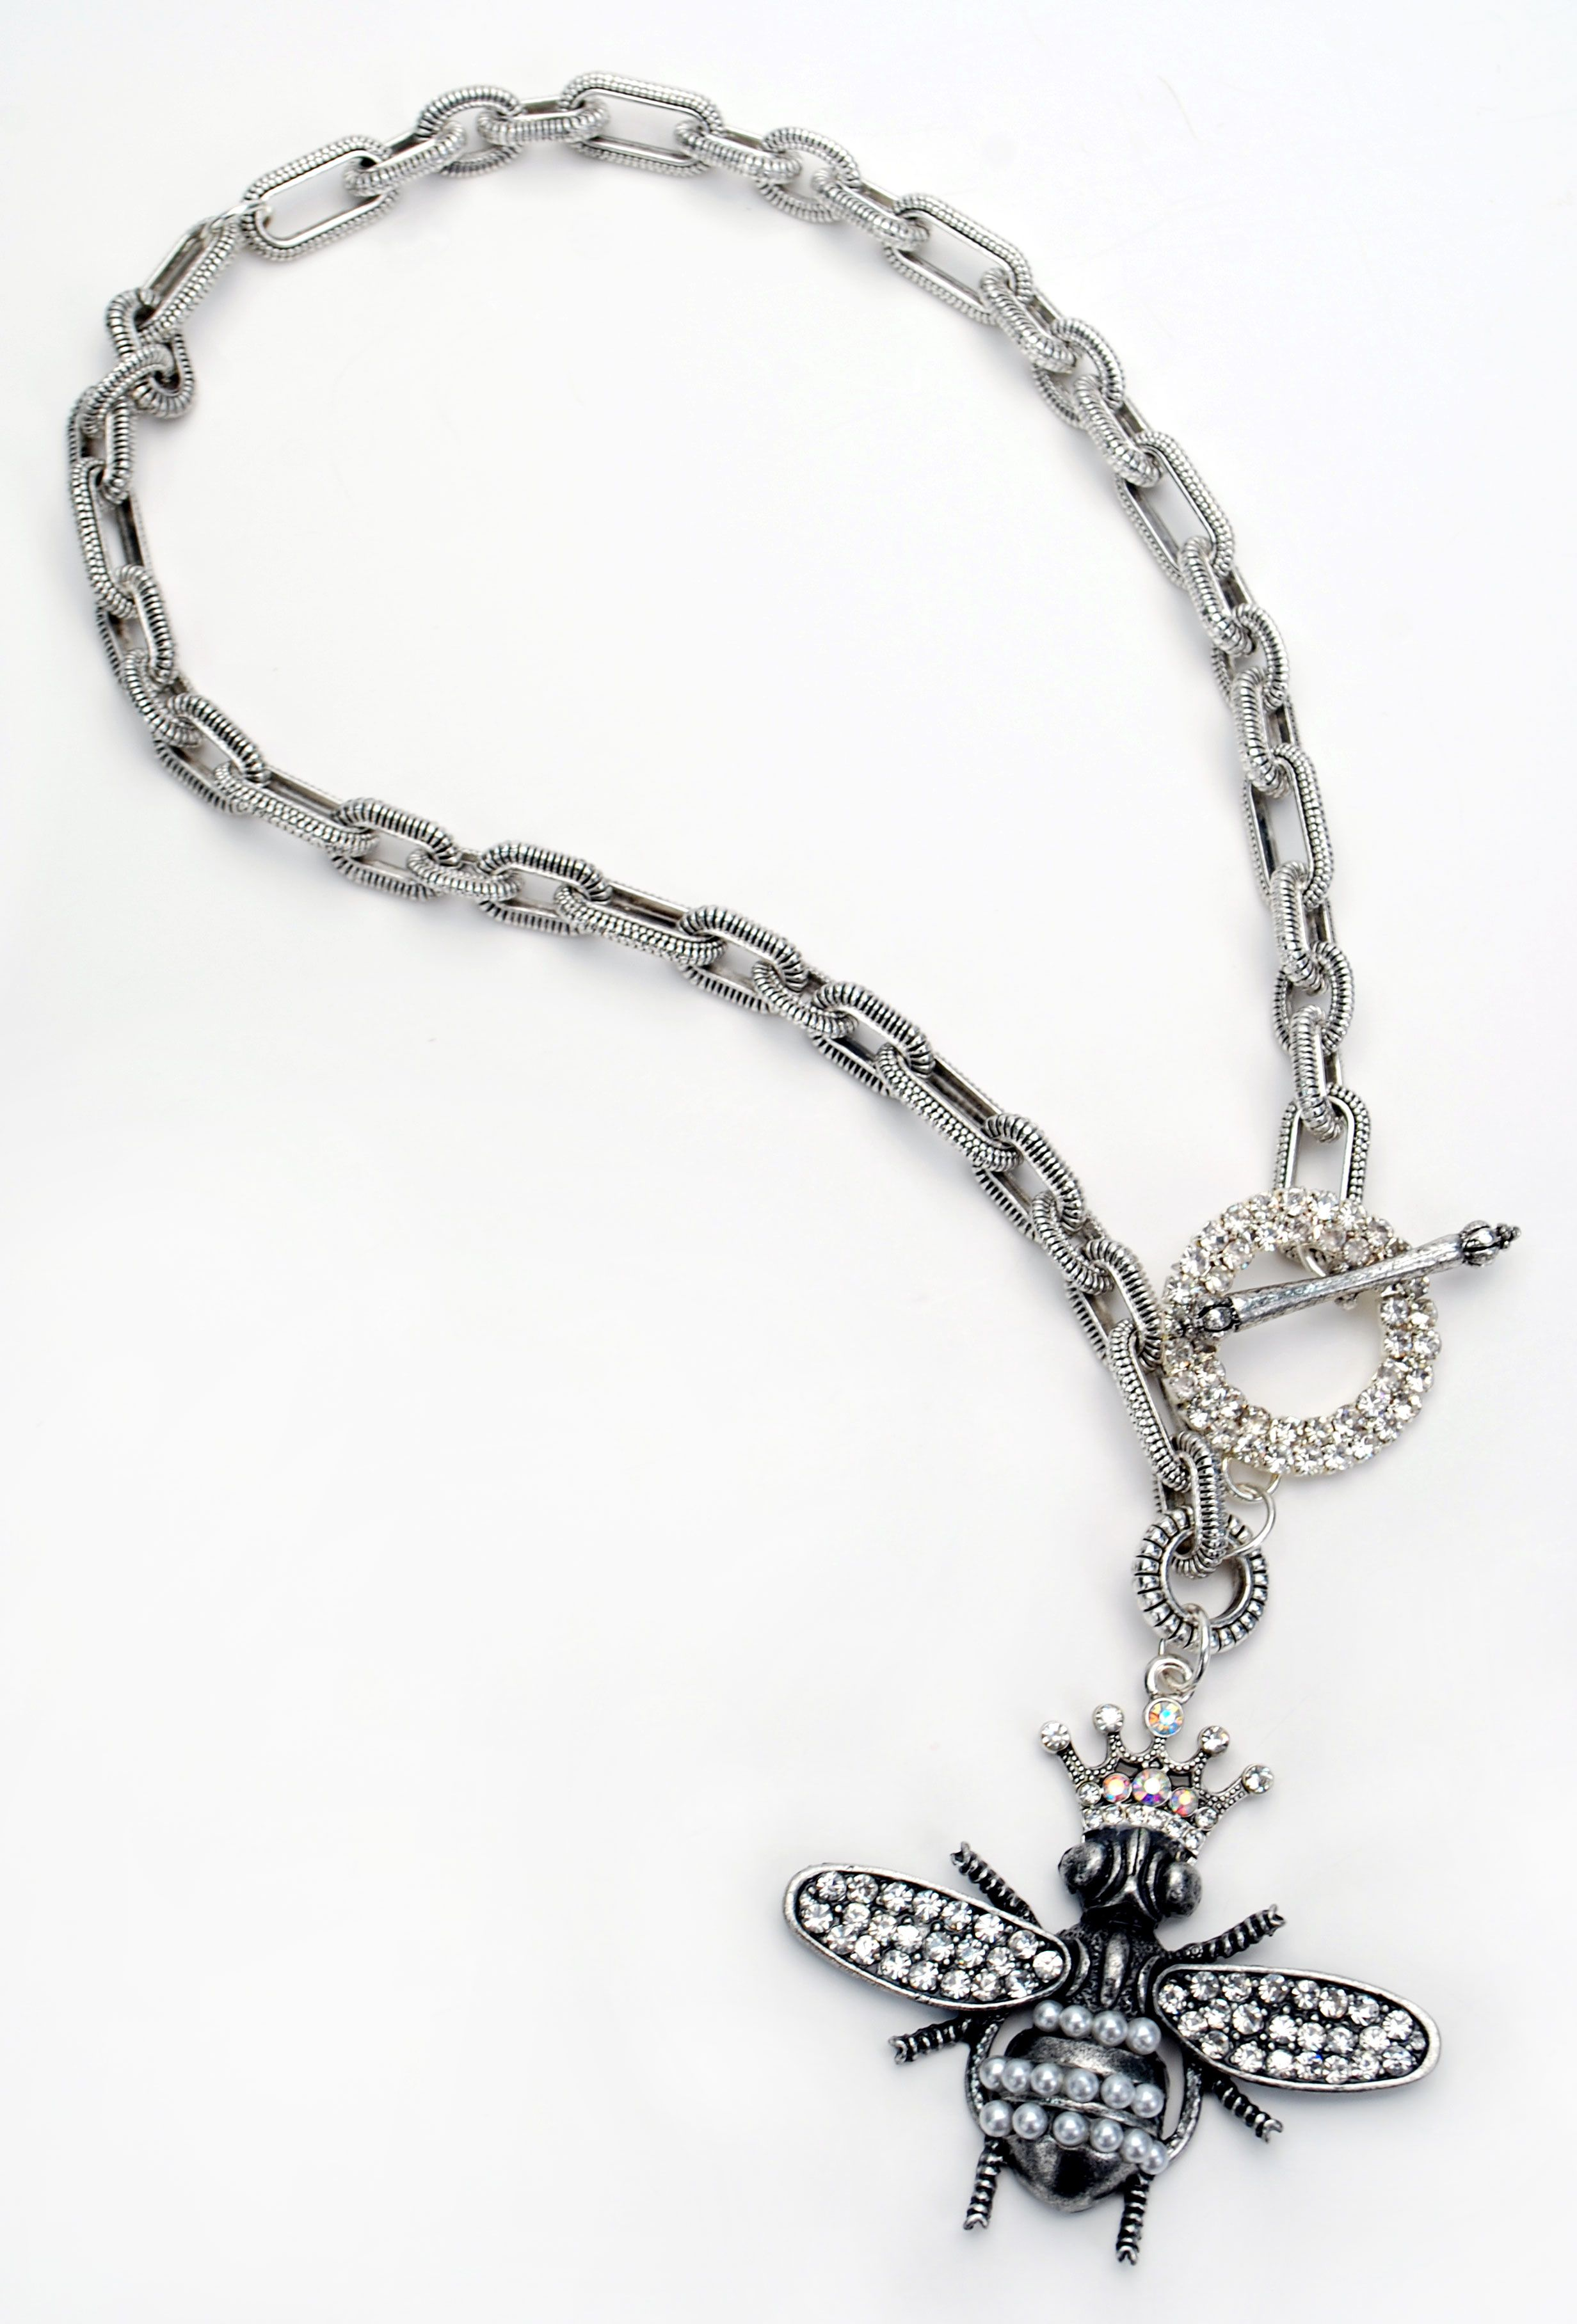 Blingin Bee Necklace, charms and components are part of the Art-i ...